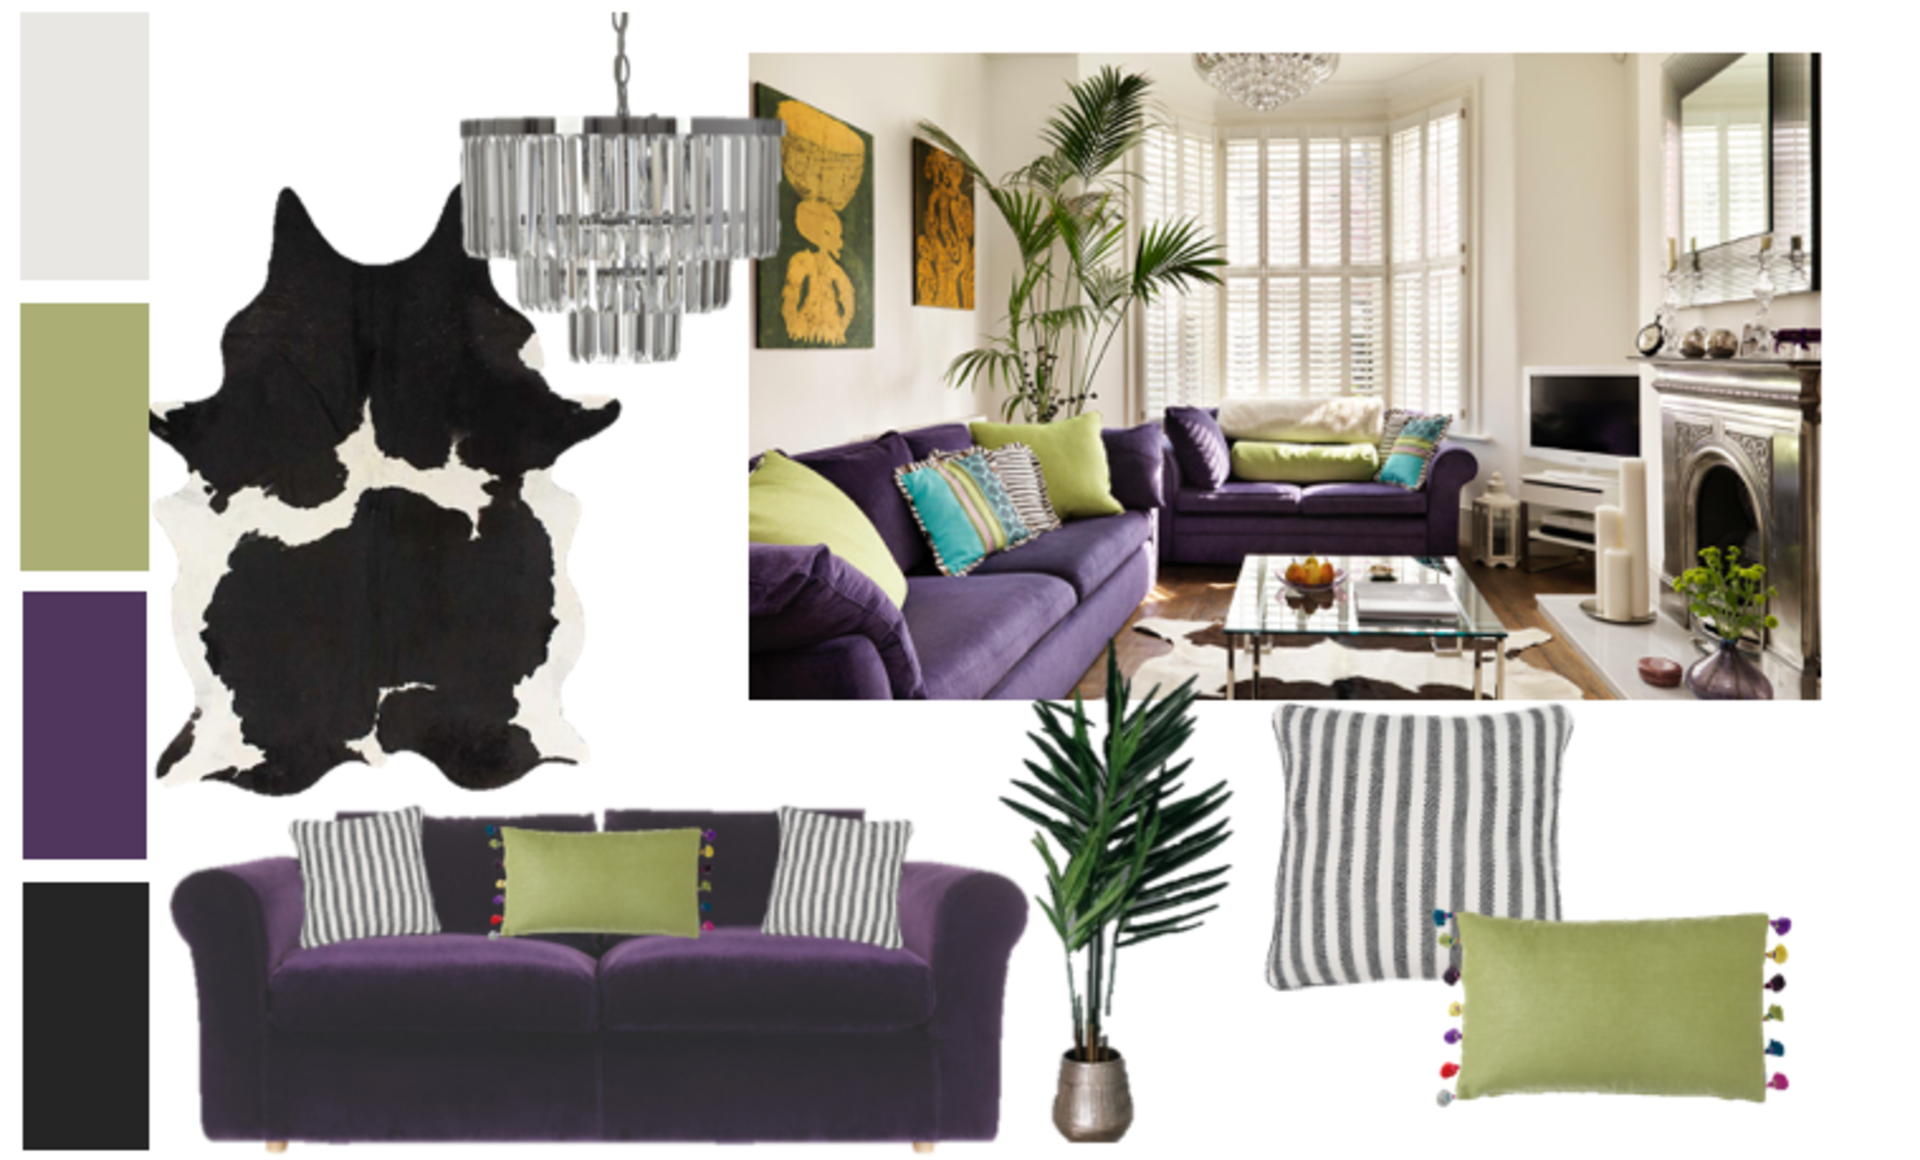 Moodboard for a Victorian living room modernised with eclectic features, bright colour and indoor greenery